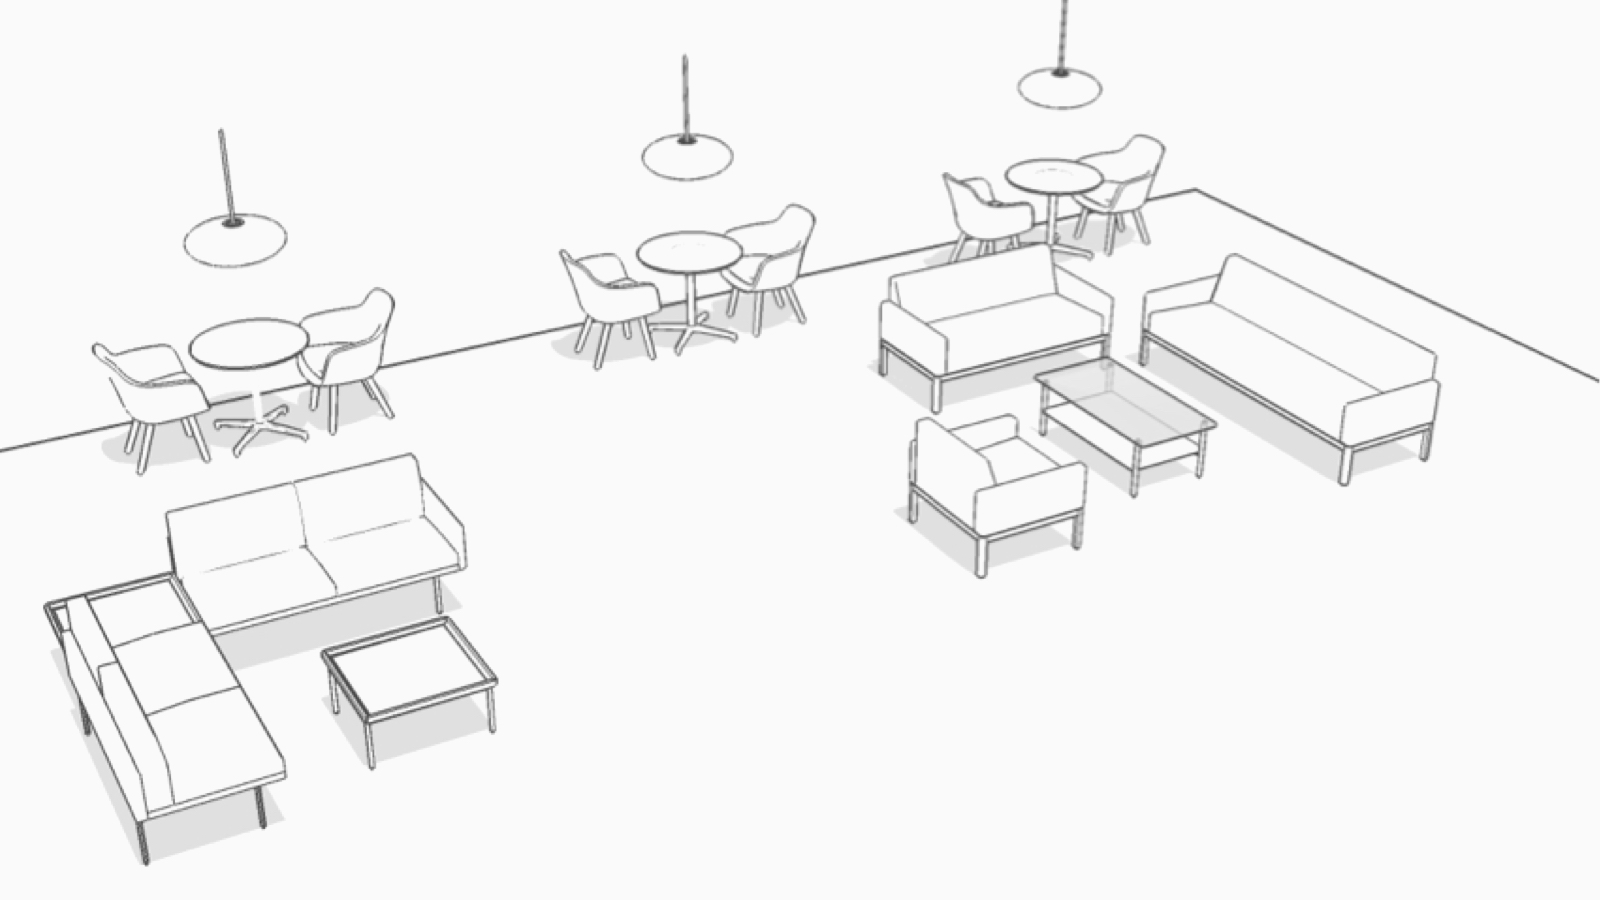 Isometric drawing of this Plaza setting.